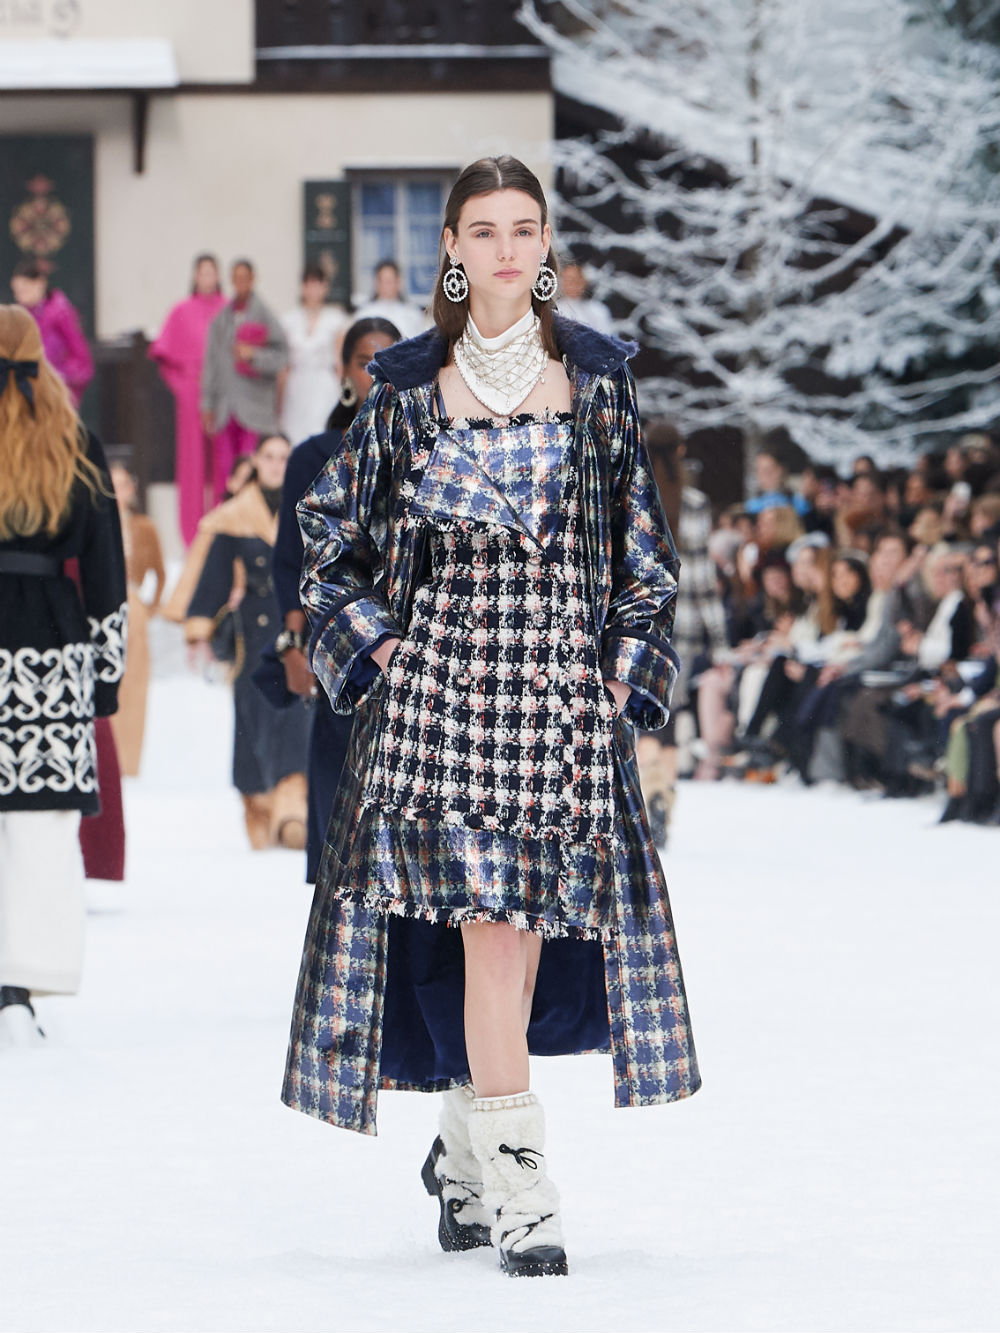 FALL-WINTER 201920 READY-TO-WEAR COLLECTION (25)